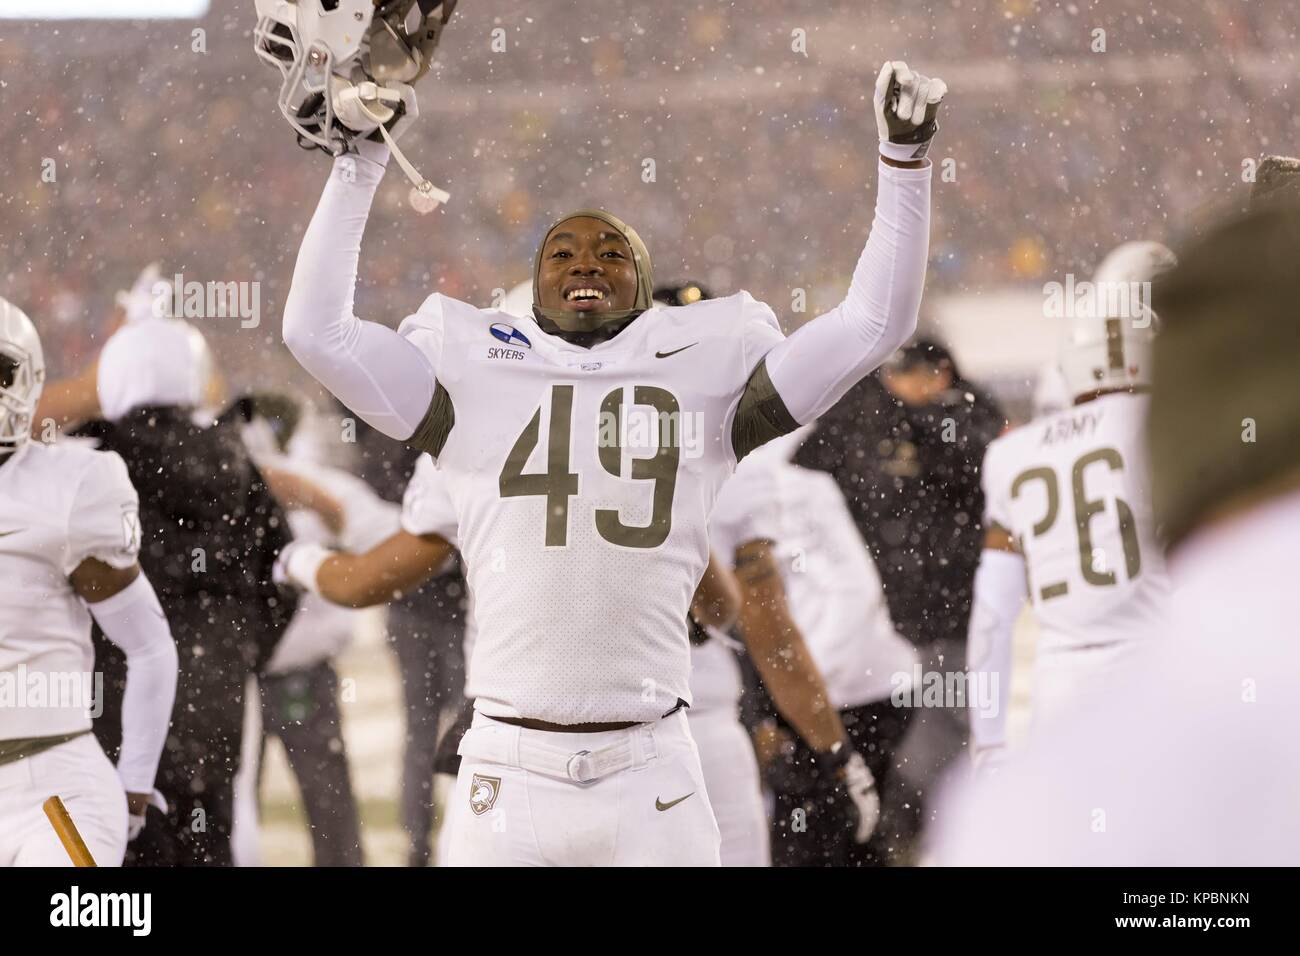 A U.S. Army football player celebrates during the U.S. Army Military Academy at West Point Black Knights versus - Stock Image